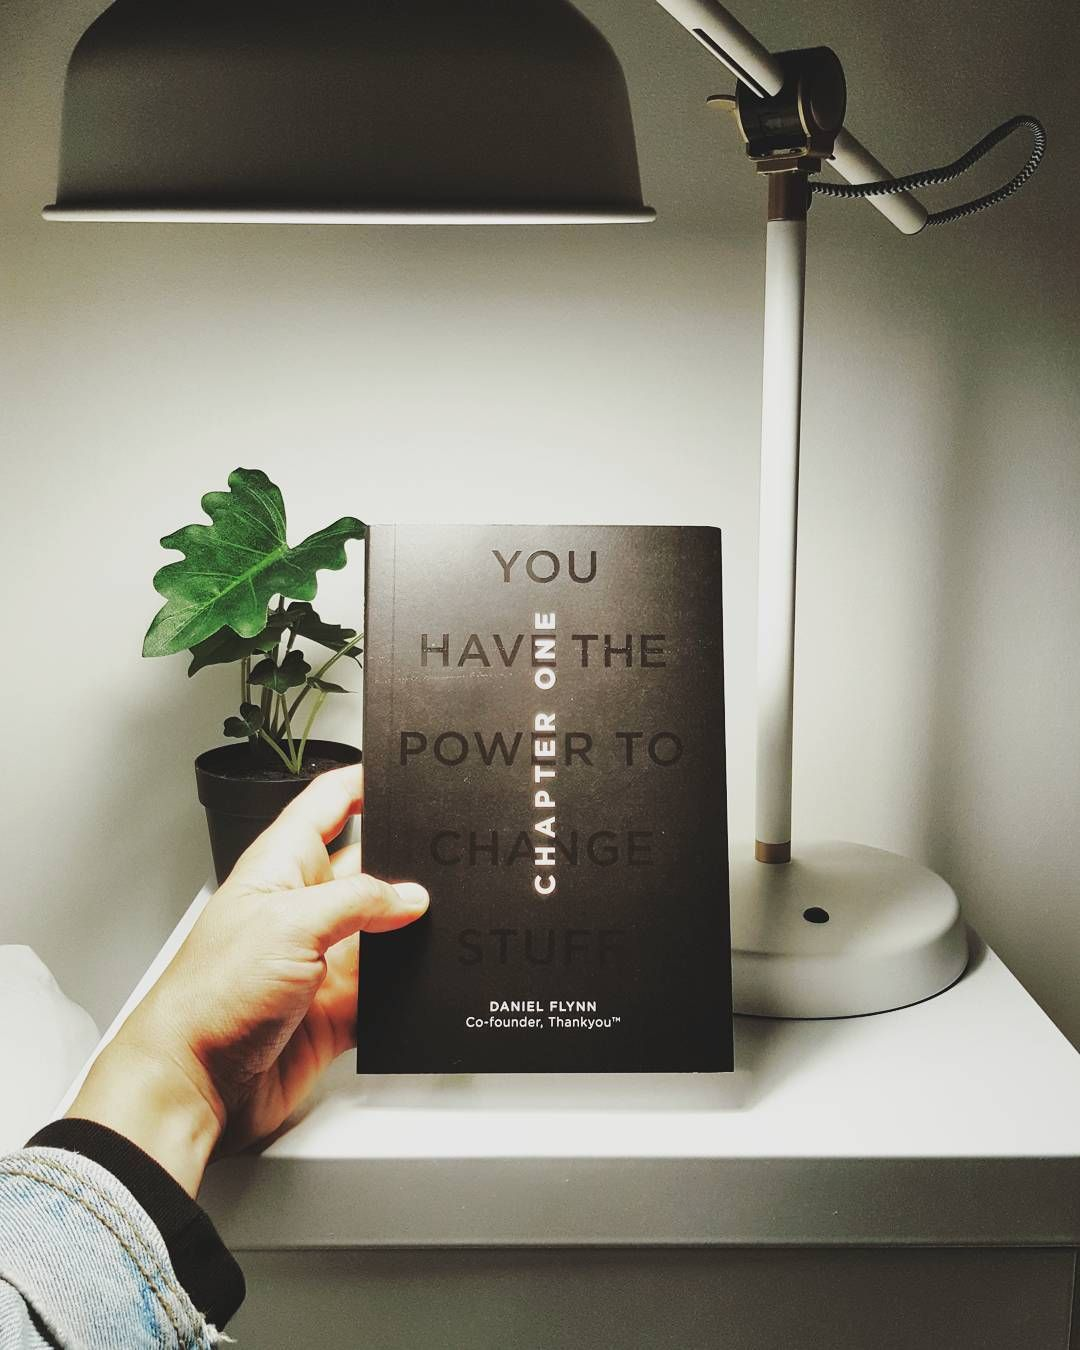 Have you read Chapter One? @danielflynn88 from @thankyouaus wrote the inspiring story of how Thank you came to be. Great read!  | @angosinc Re-post by Hold With Hope